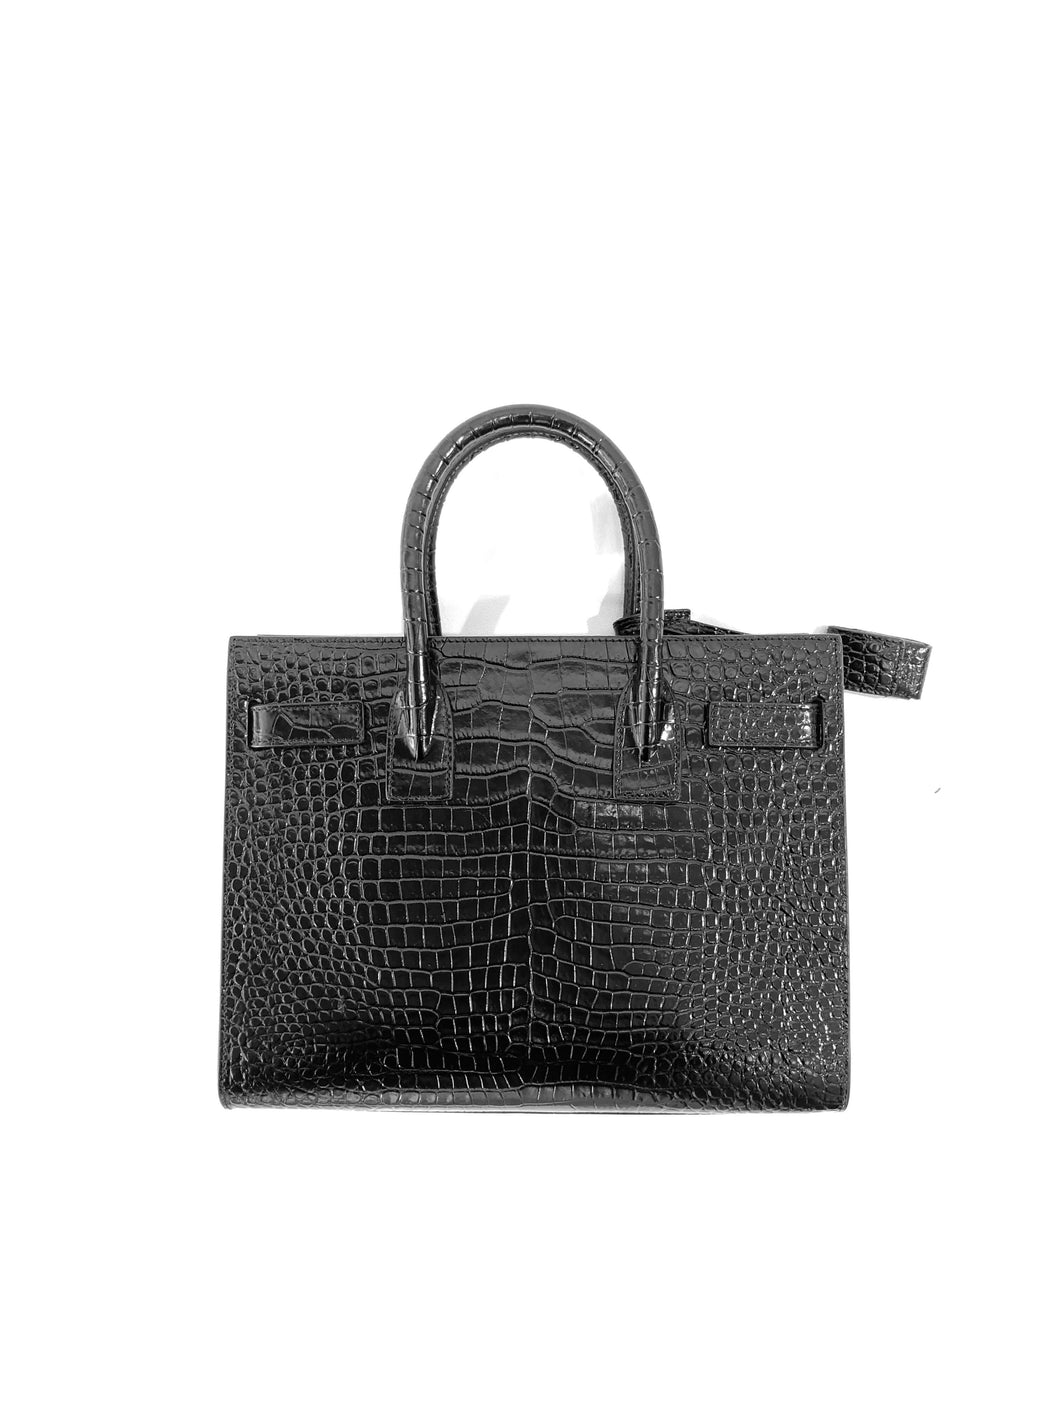 Yves Saint Laurent Small Sac de Jour Tote Black